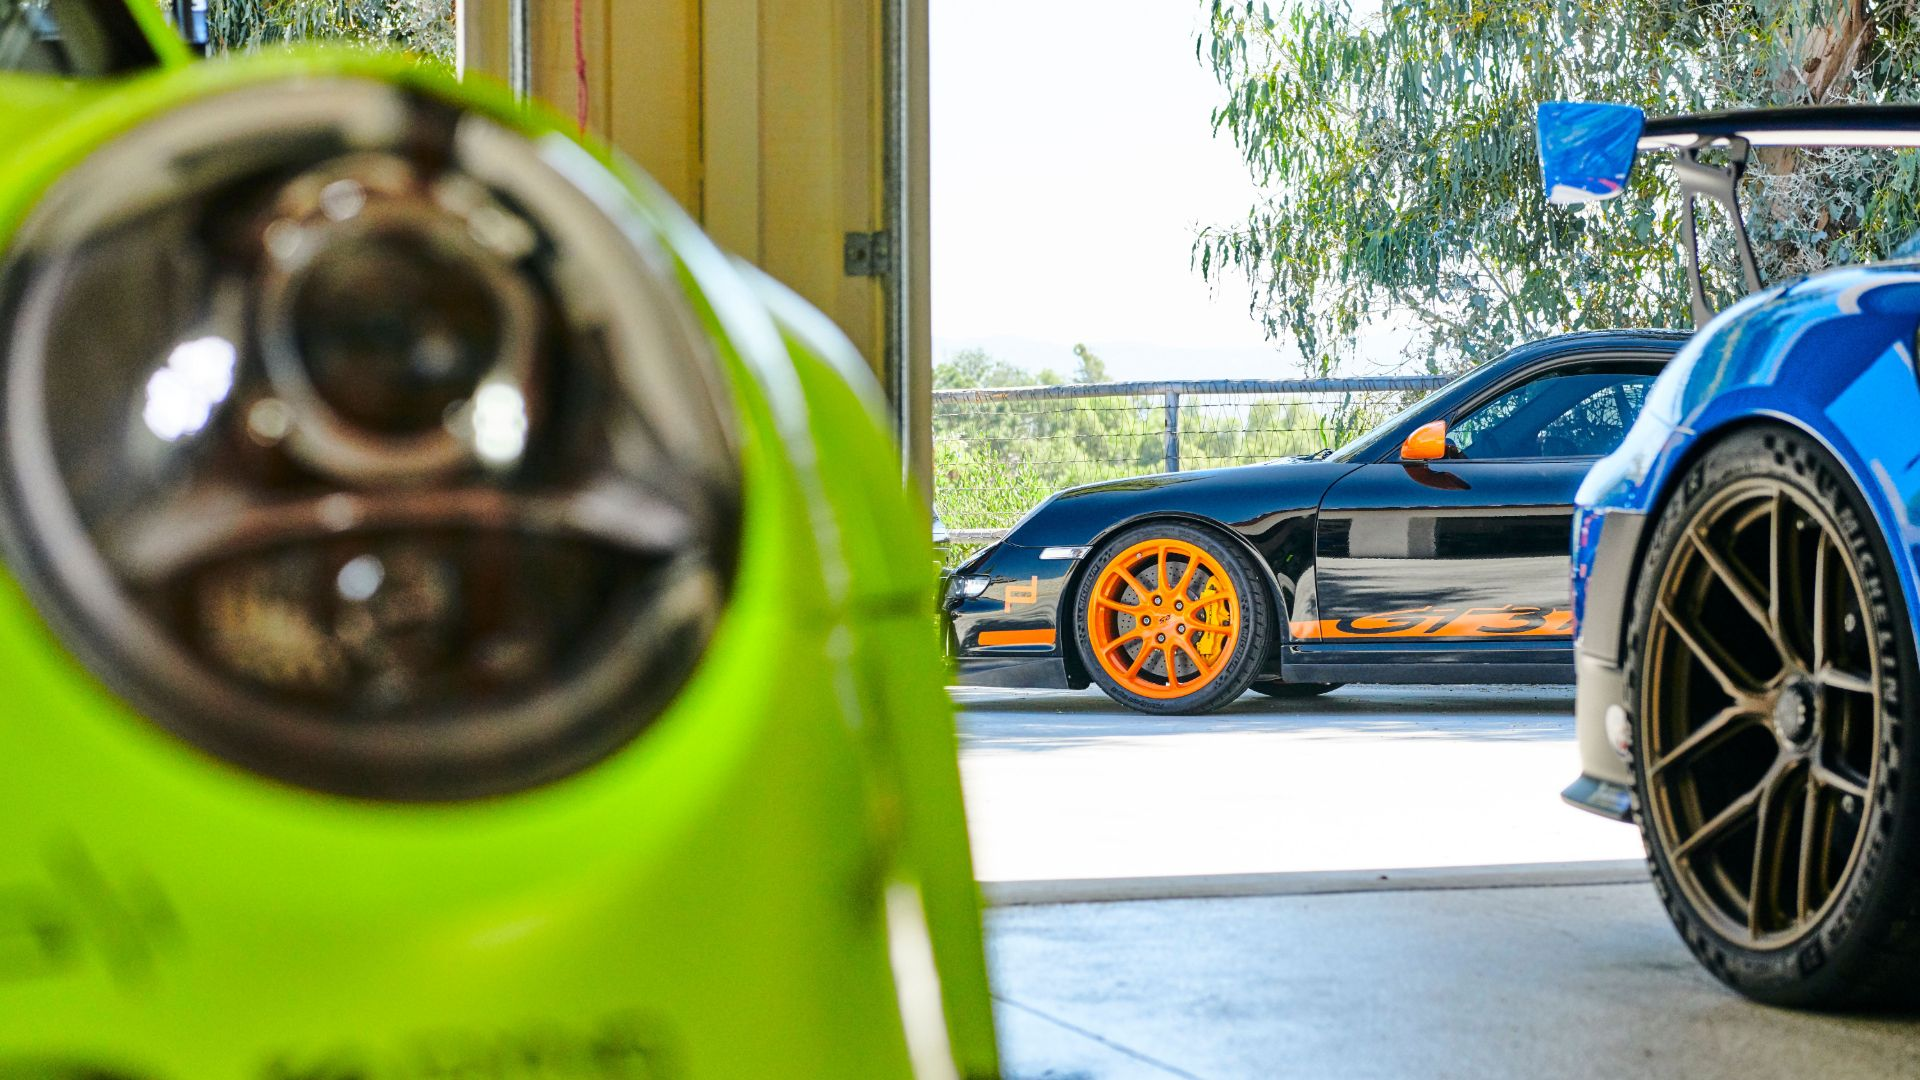 Porsche collector loves bright colours